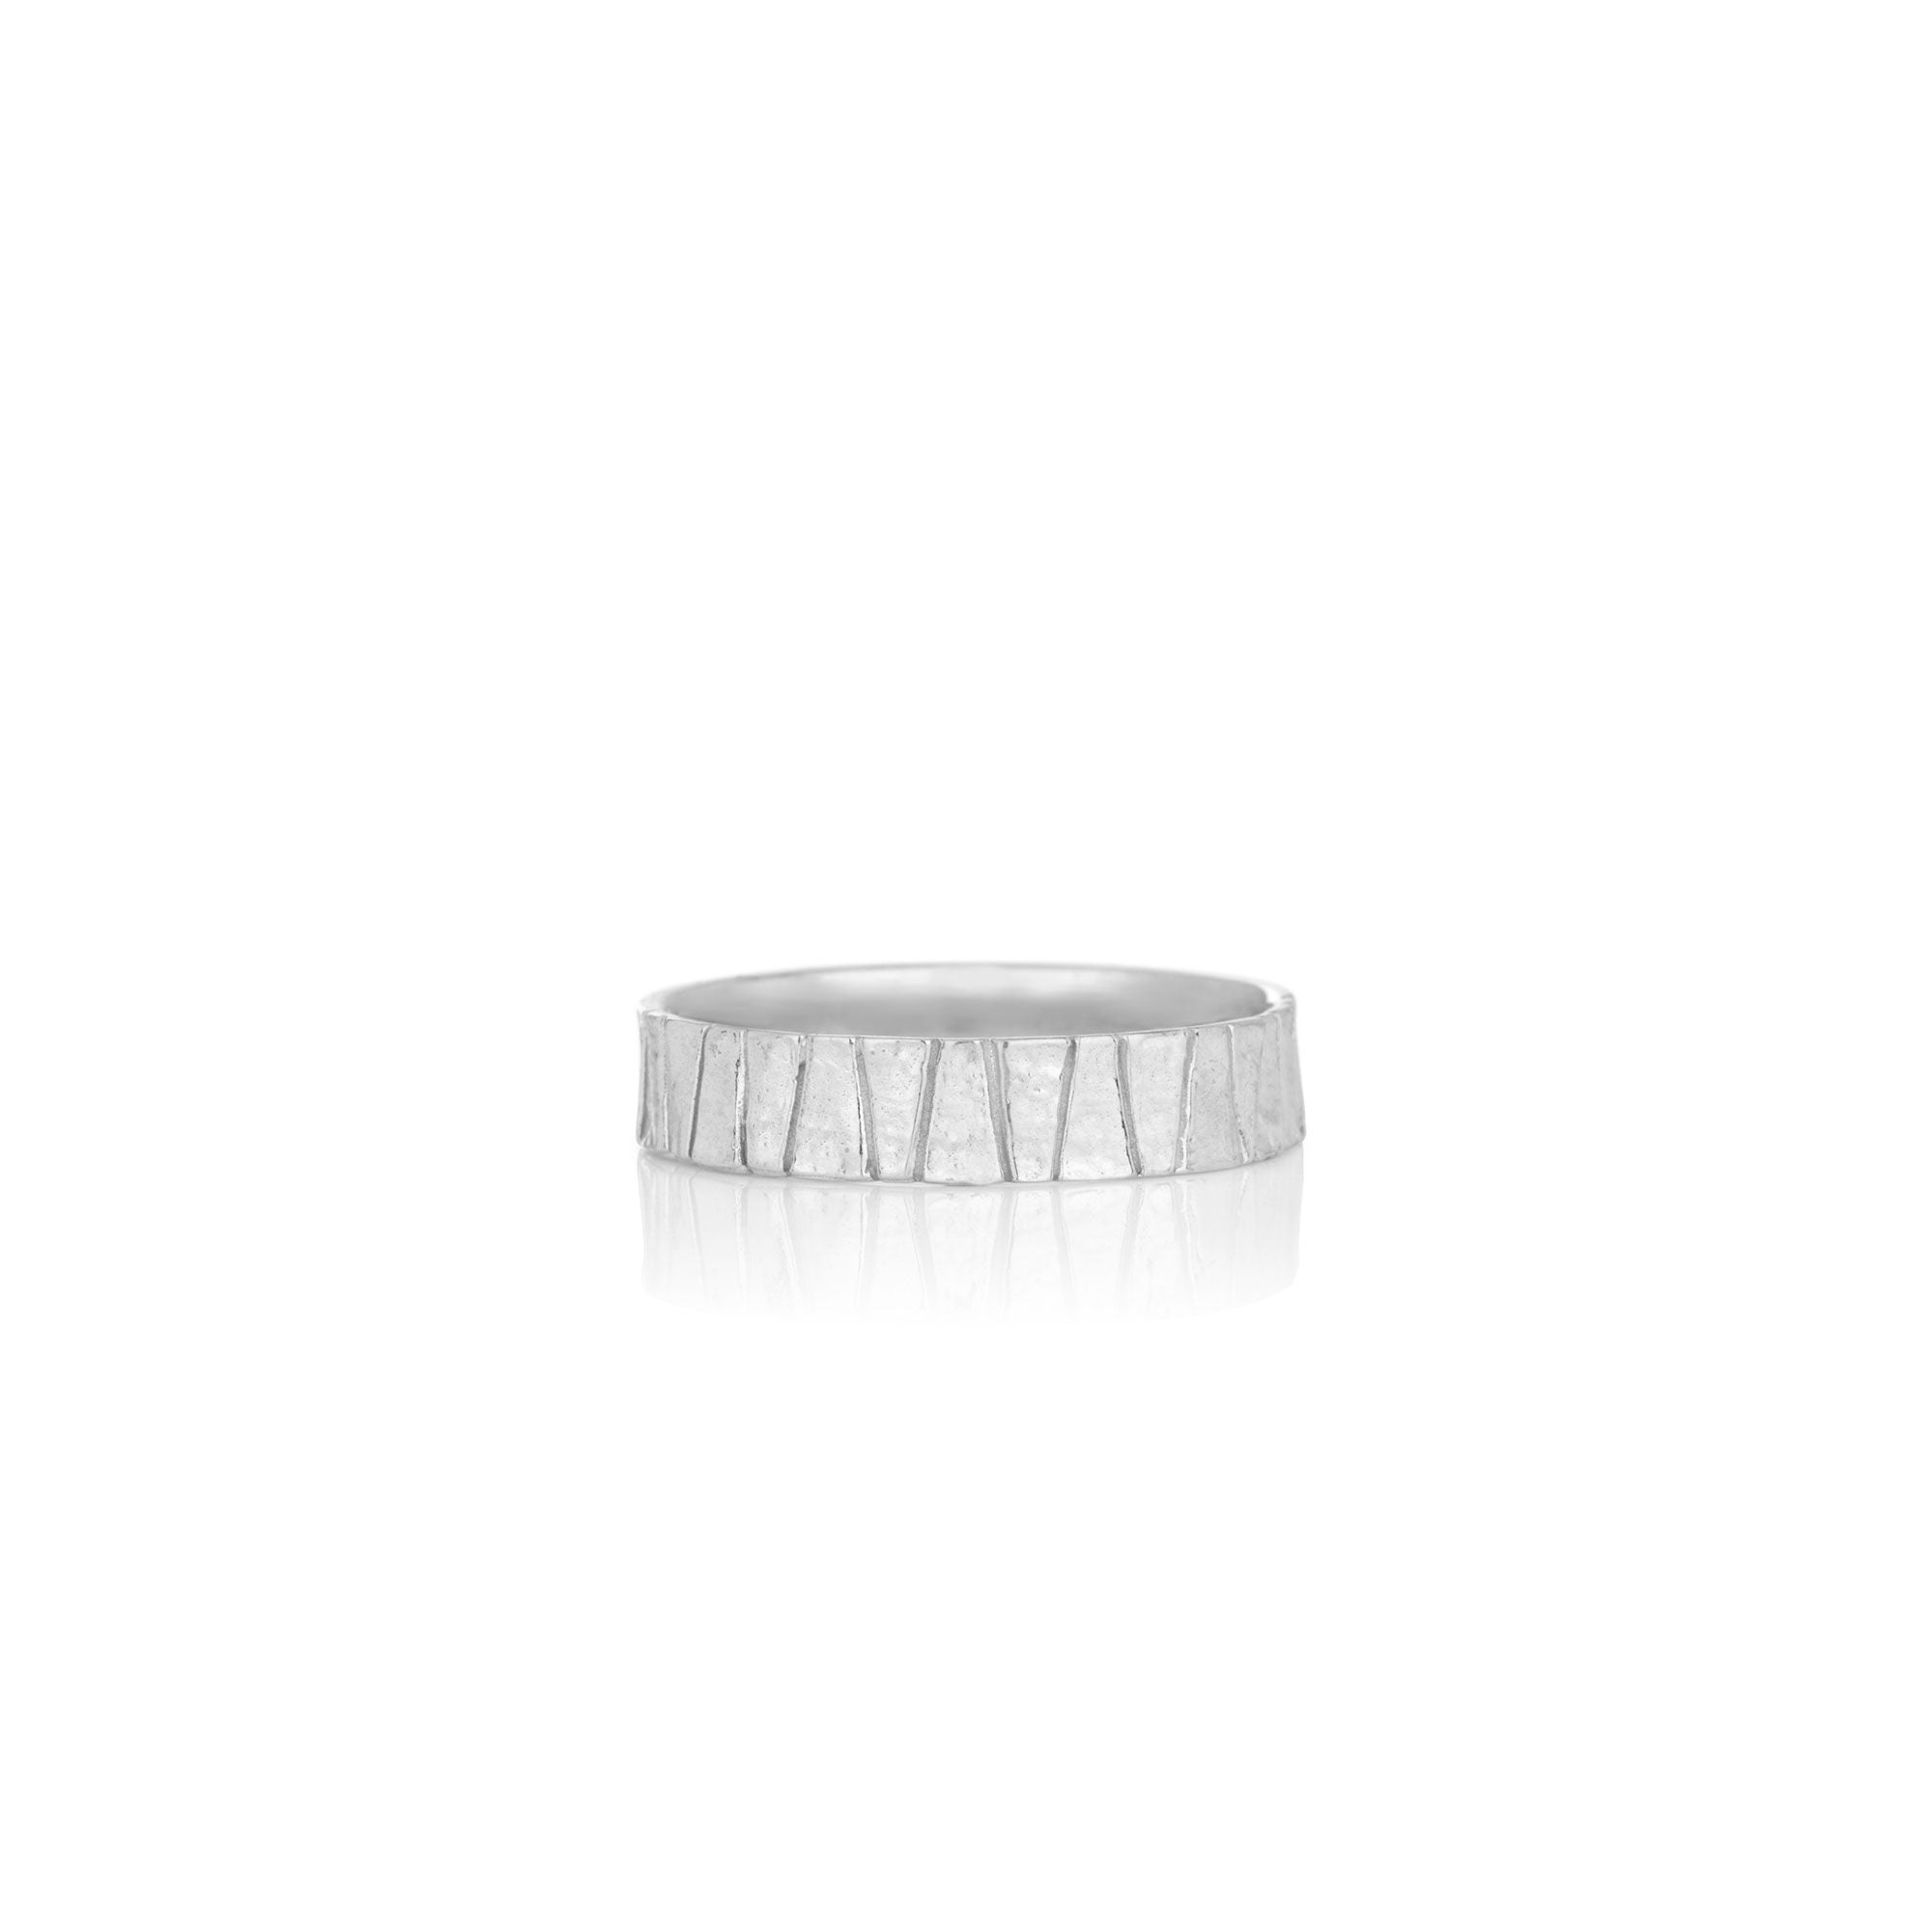 Women's wedding ring - TUTTU